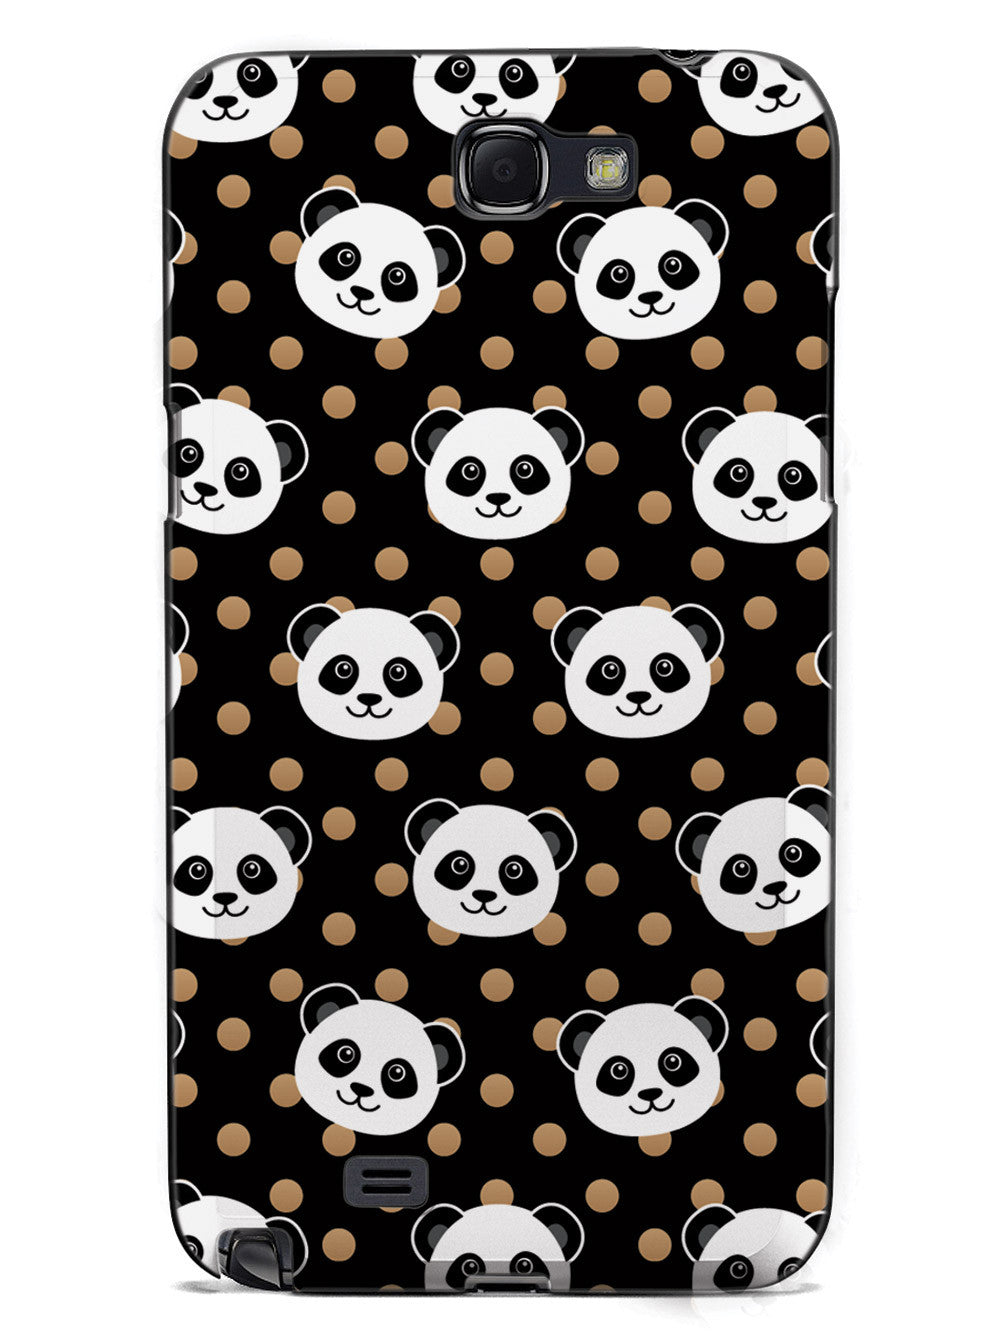 Cute Panda Pattern - Brown Polka Dots - Black Case